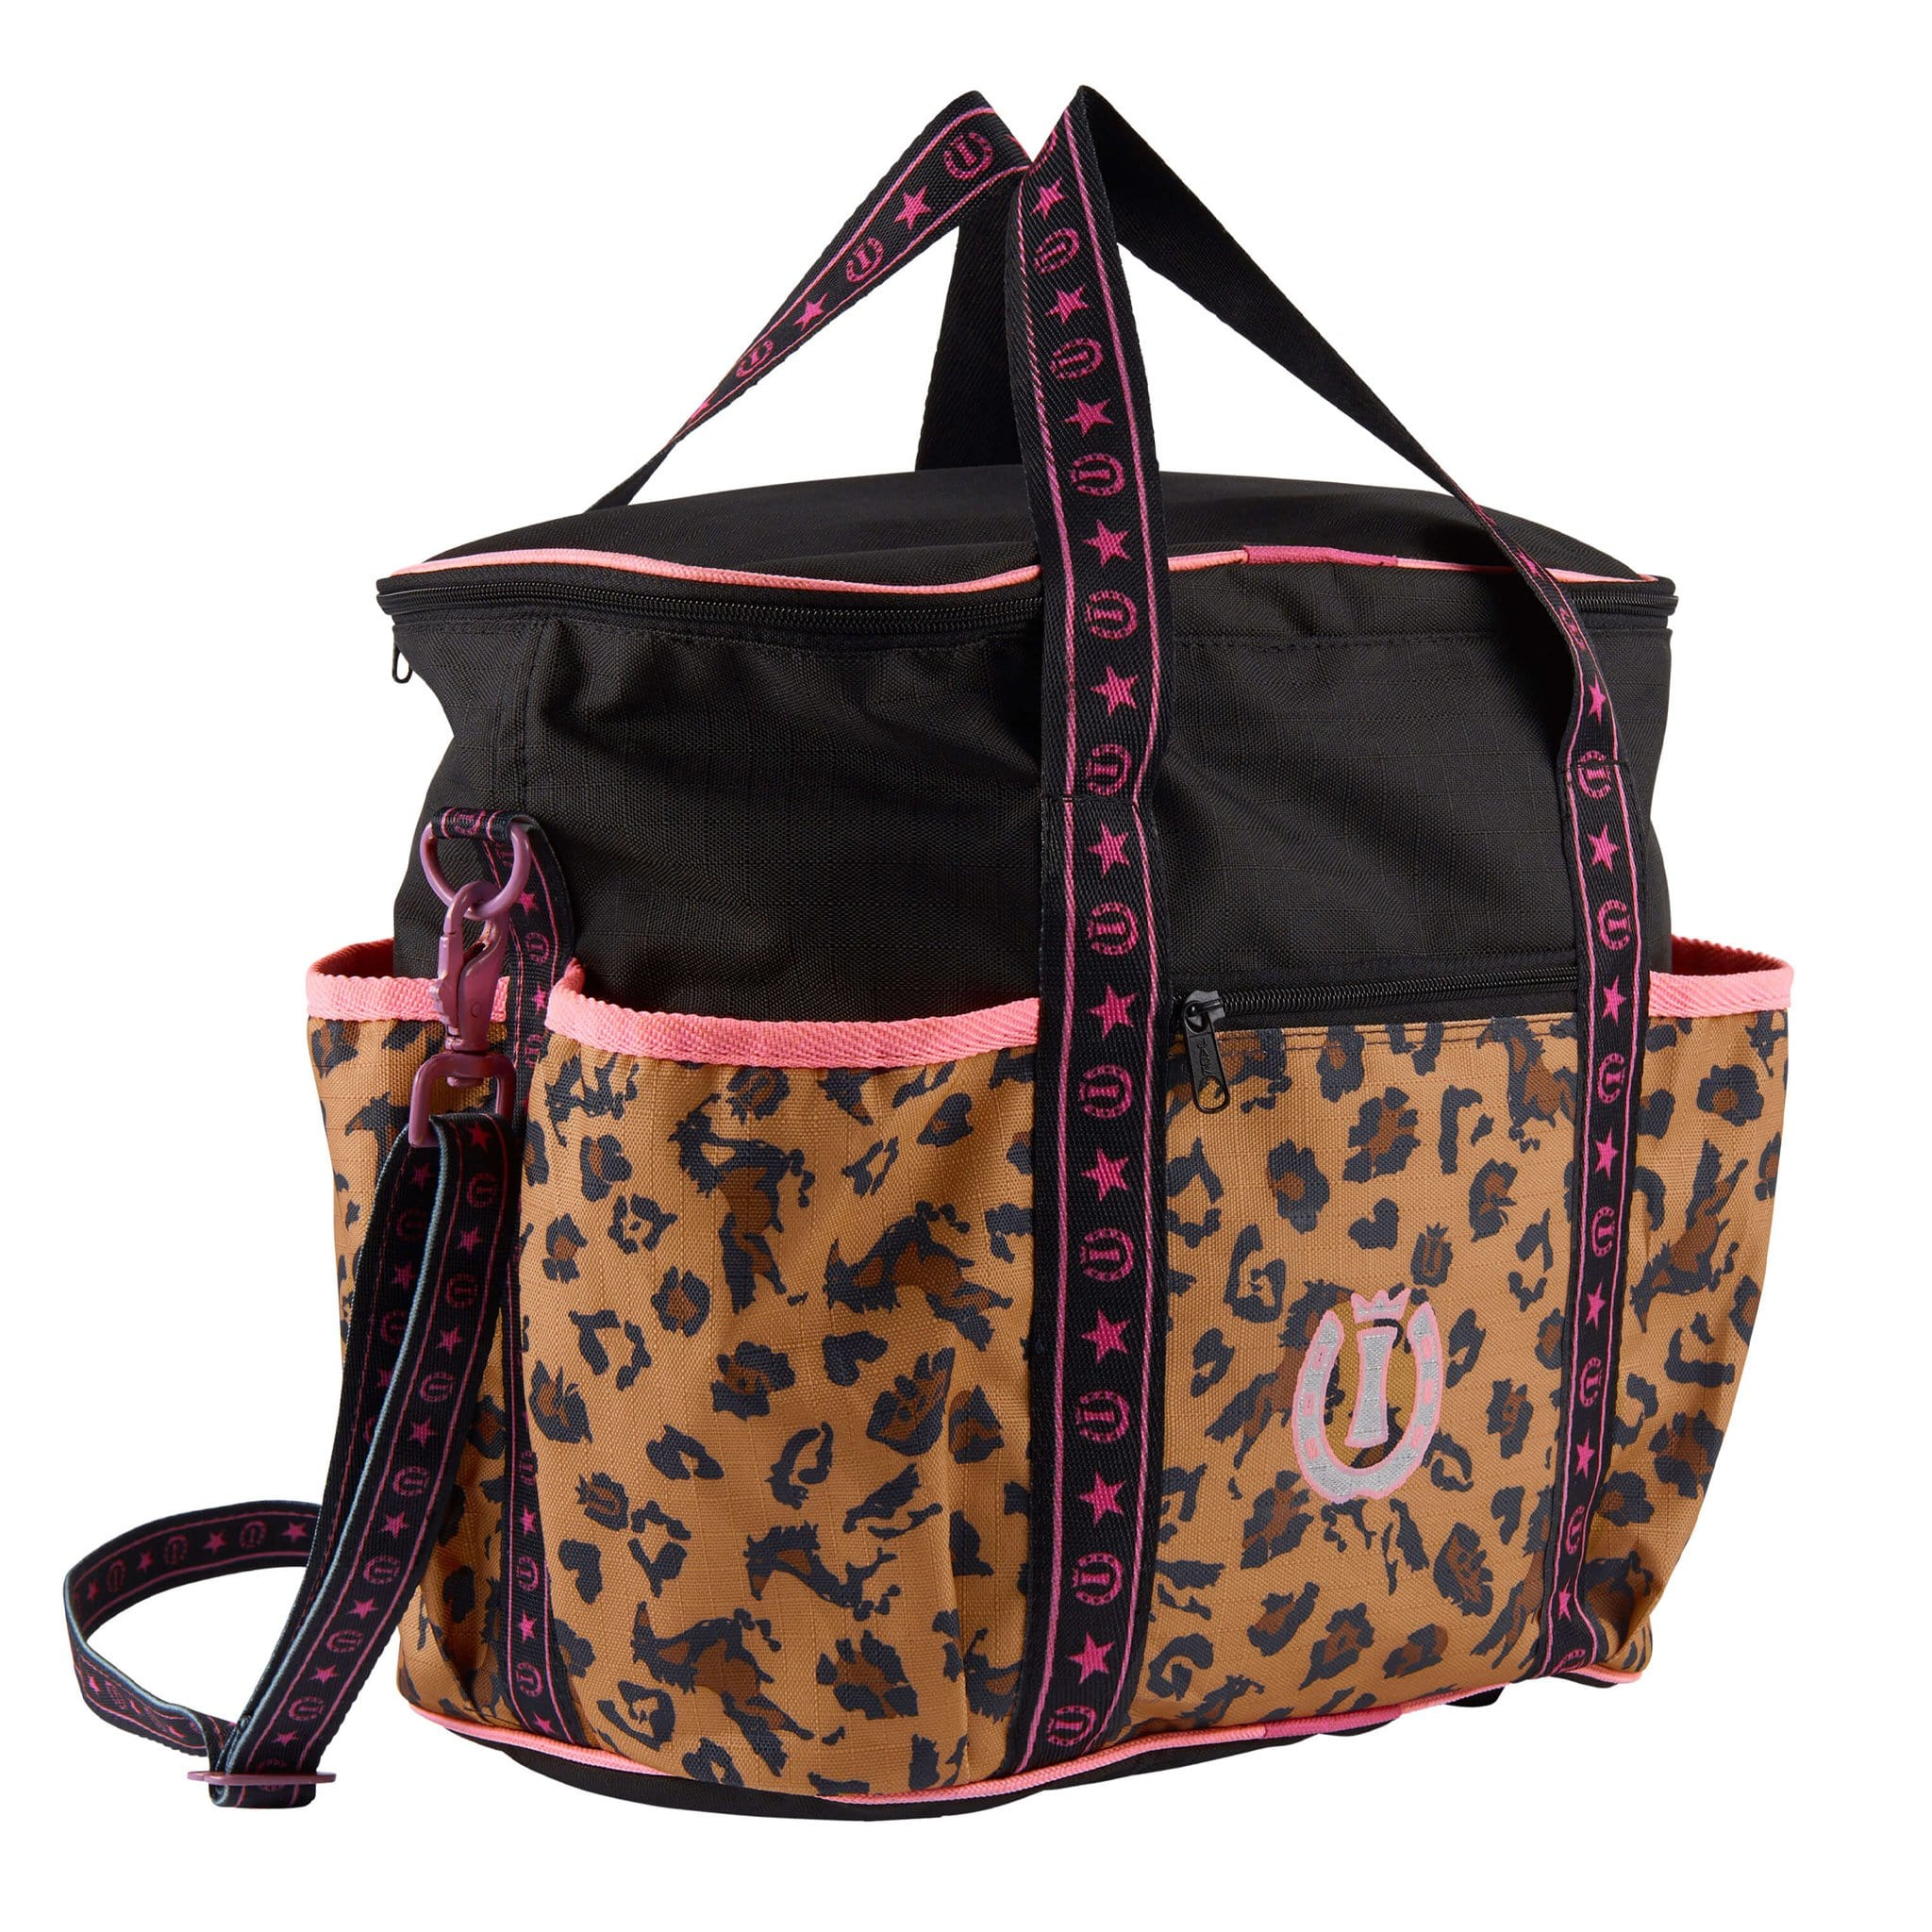 Imperial Riding Beautifully Wild Grooming Bag Leopard ST68120000